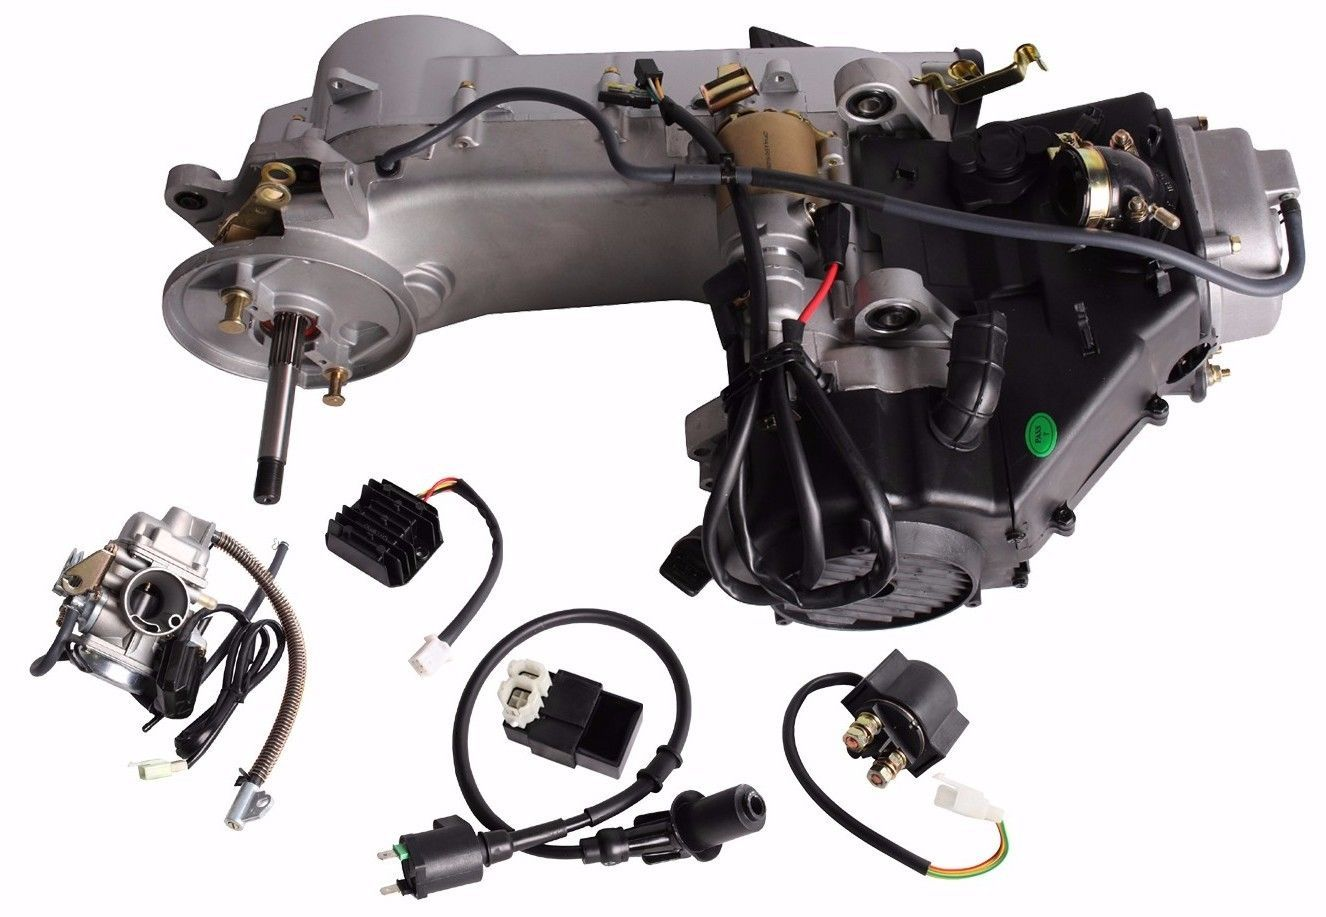 Details about Long Case 150CC GY6 Moped Scooter Engine Motor